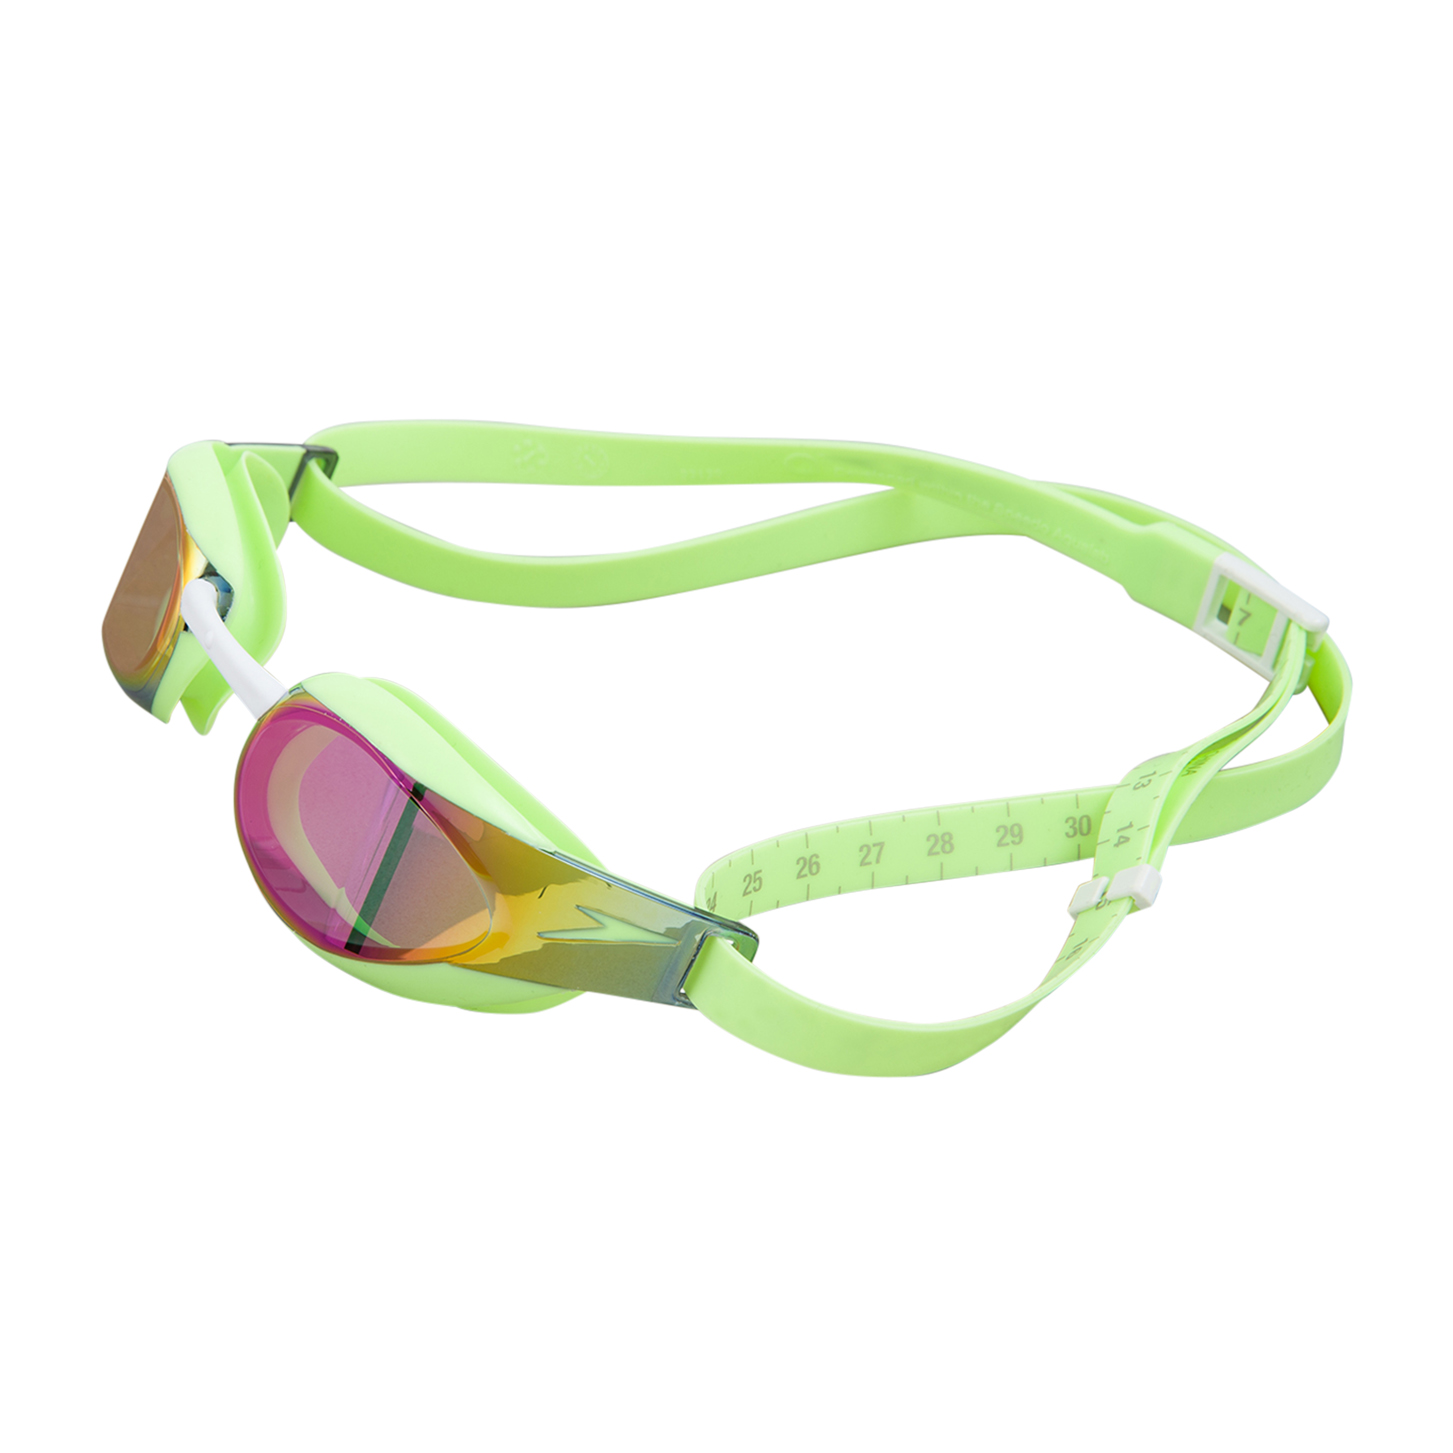 Speedo Fastskin3 Elite Mirror Jr. Green